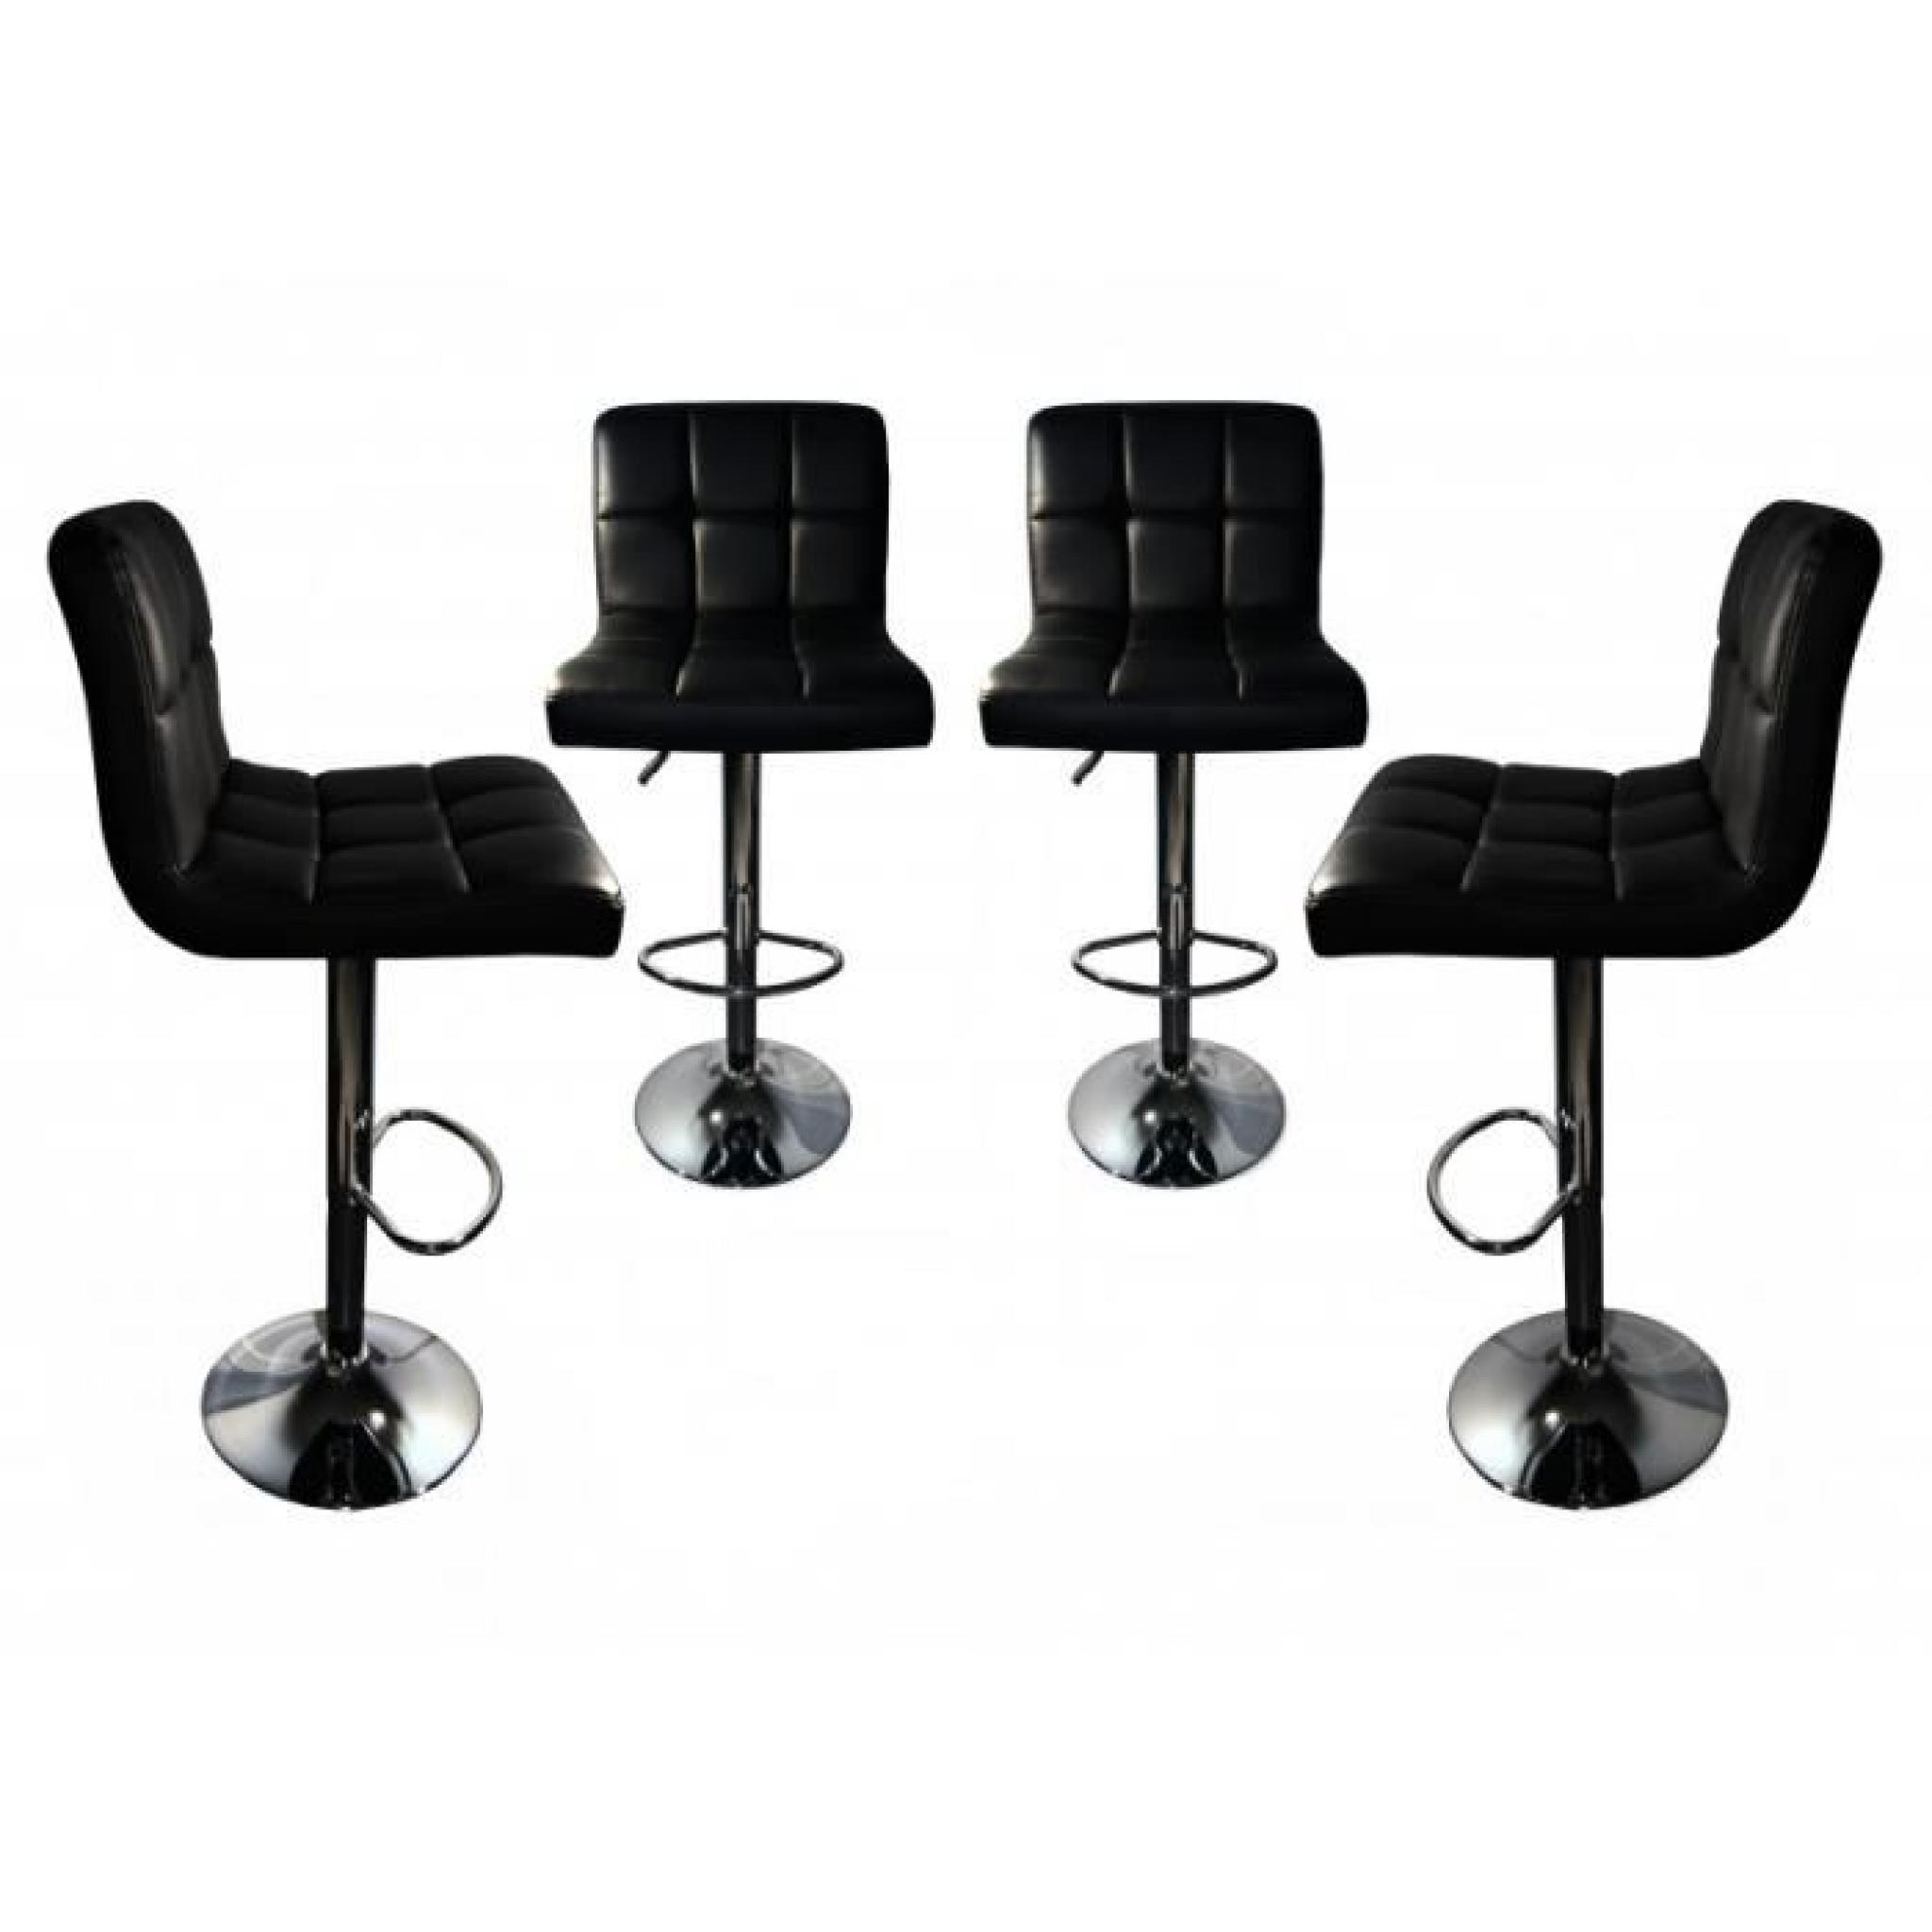 dave lot de 4 tabourets de bar noir achat vente tabouret de bar pas cher couleur et. Black Bedroom Furniture Sets. Home Design Ideas